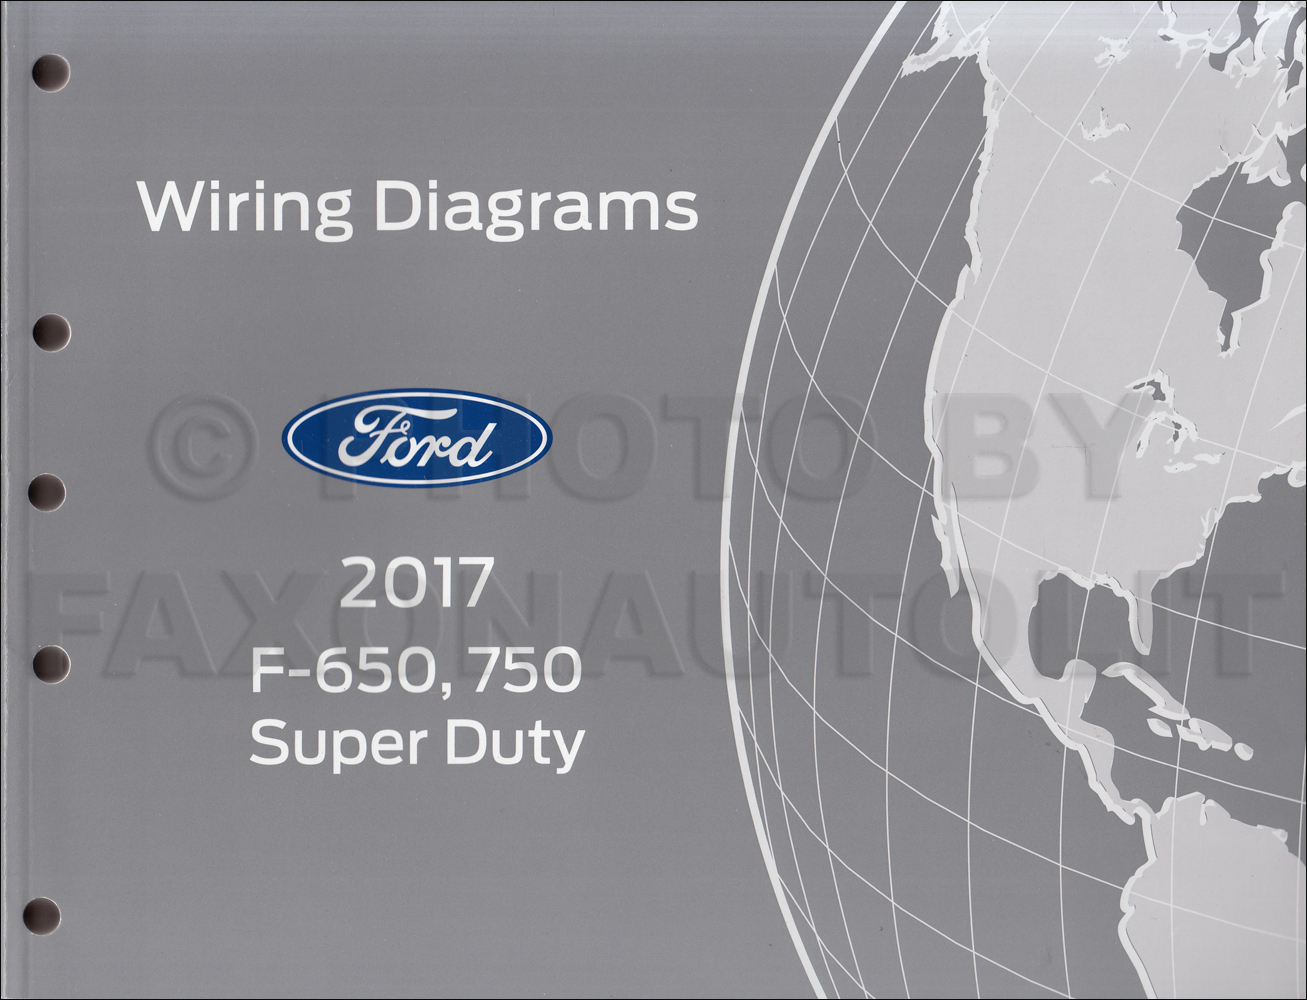 Fordfiestaowd furthermore Fordexplorerowd Toc in addition Fordcrownvictoriawd Toc besides Explorermountaineerwdtoc additionally Plate. on 1940 ford wiring diagram